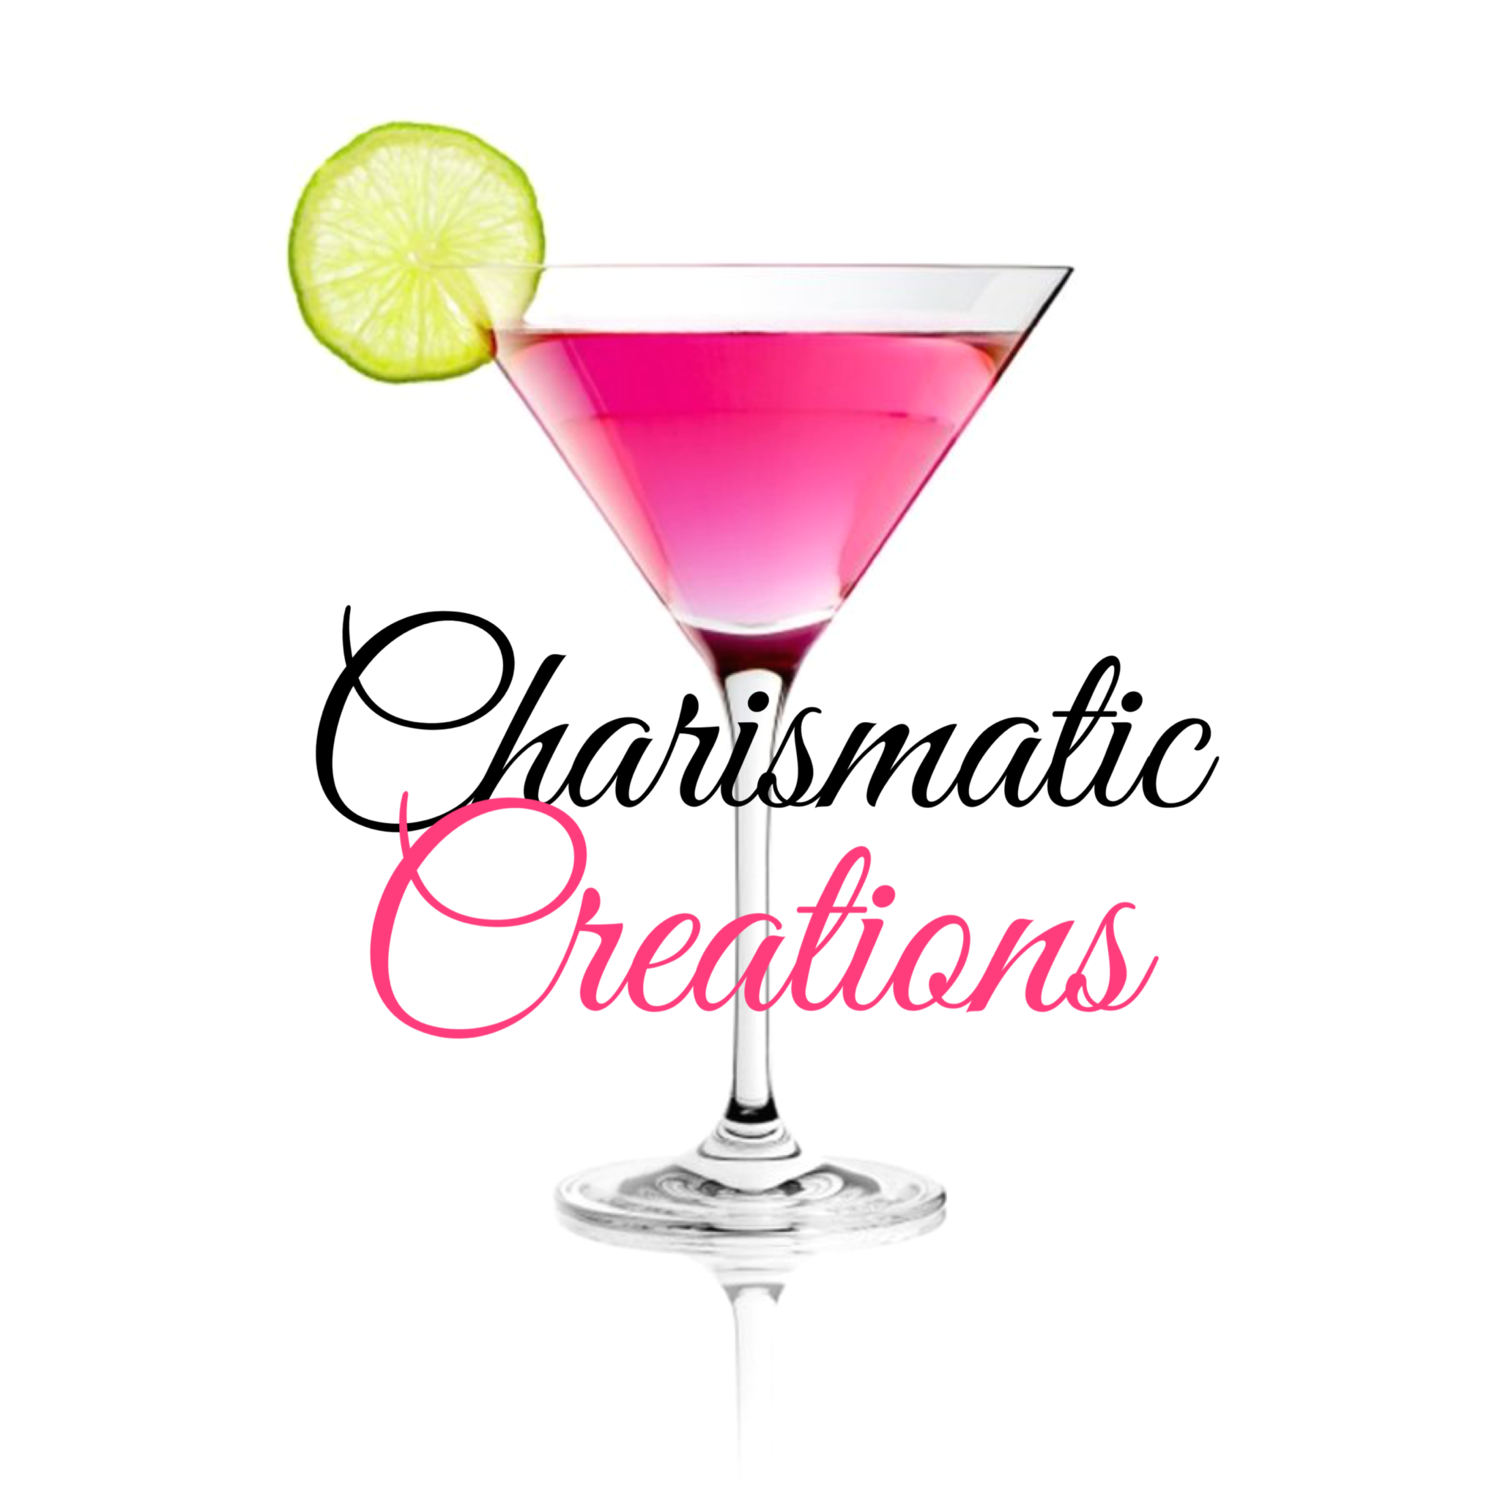 Charismatic Creations